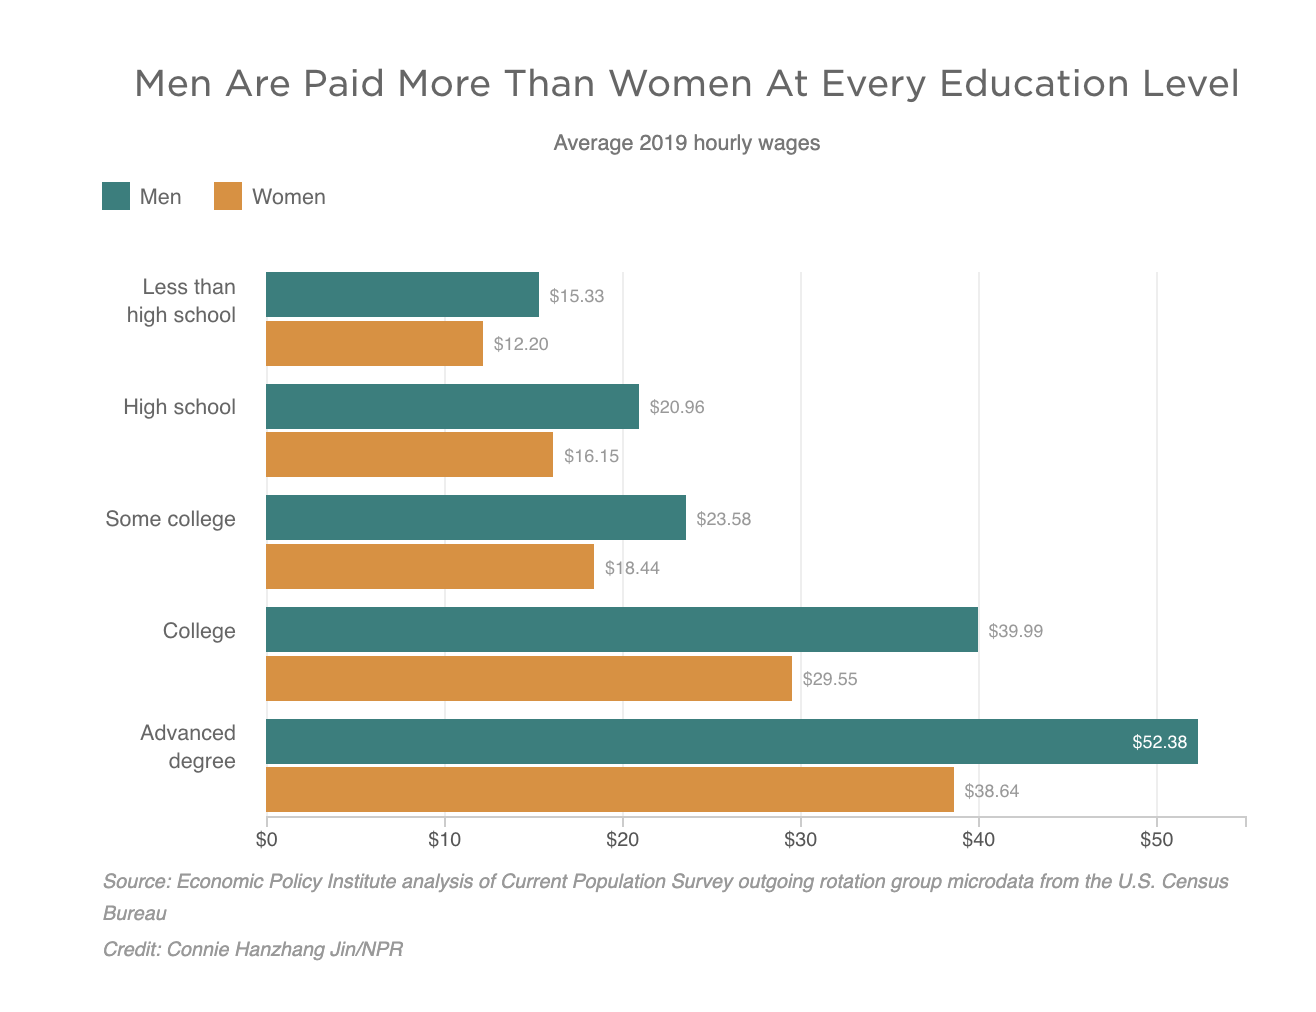 Men Are Paid More Than Women At Every Education Level